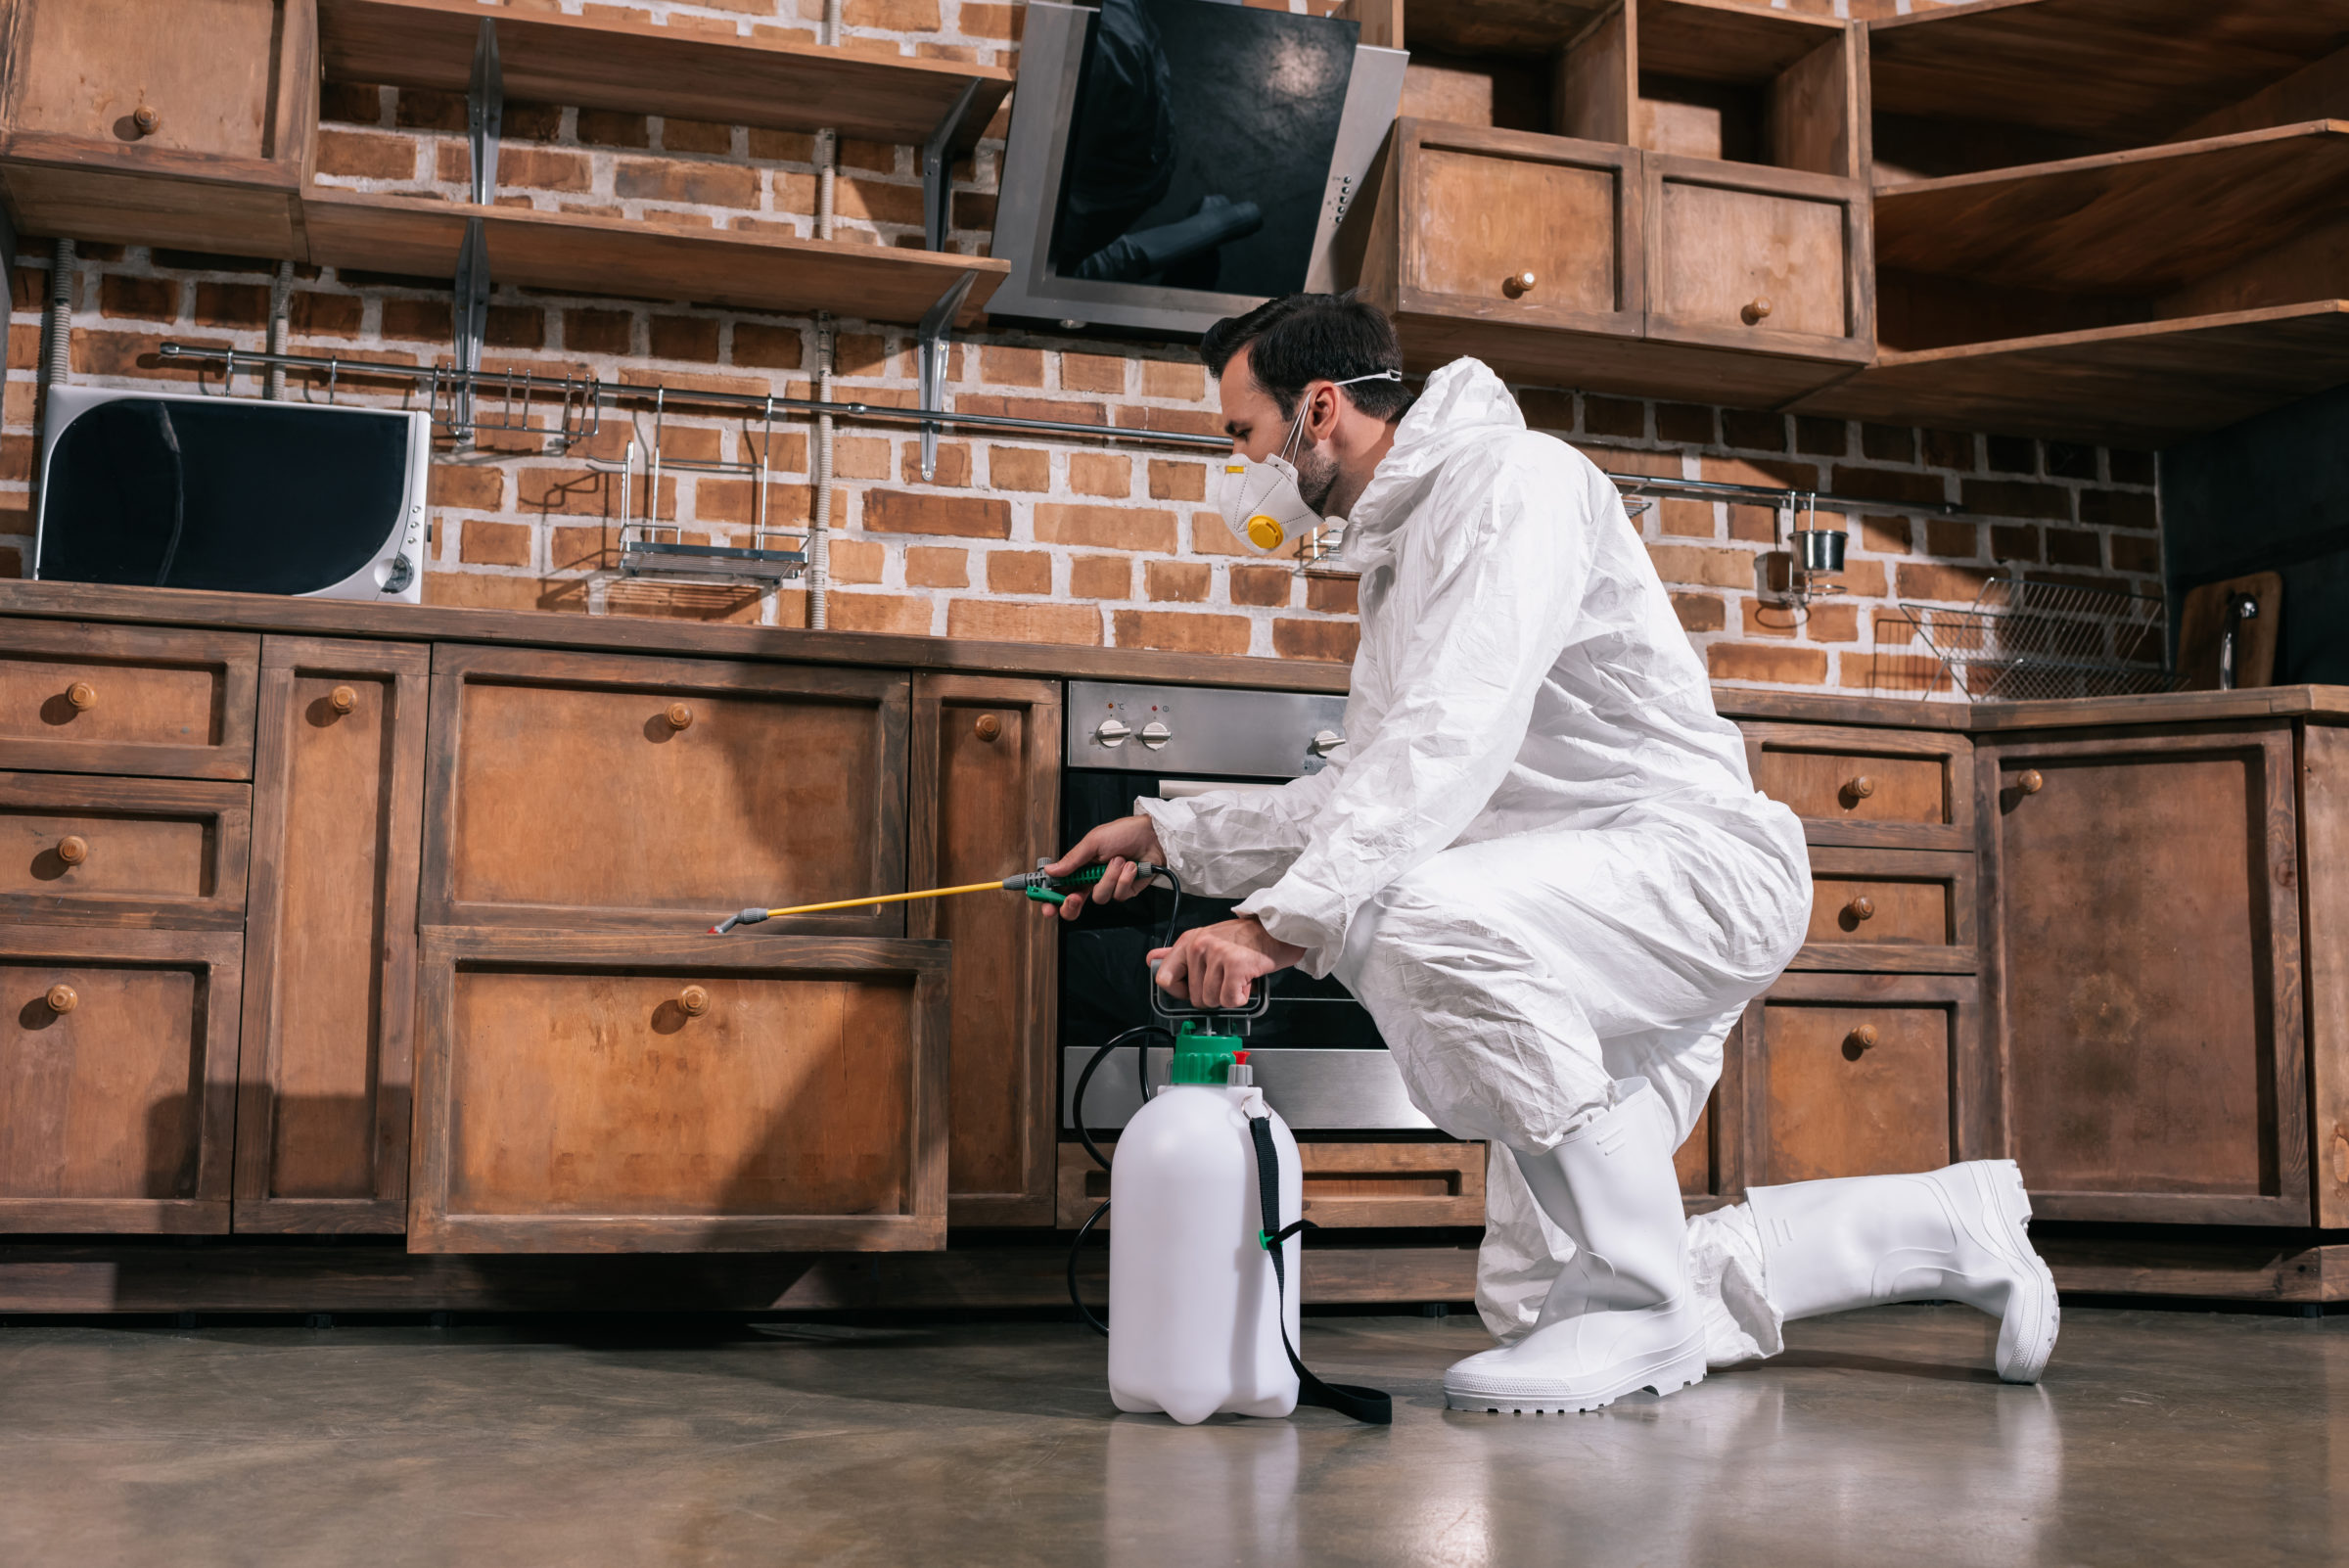 pest control worker spraying pesticides in cabinet H5F6EXA